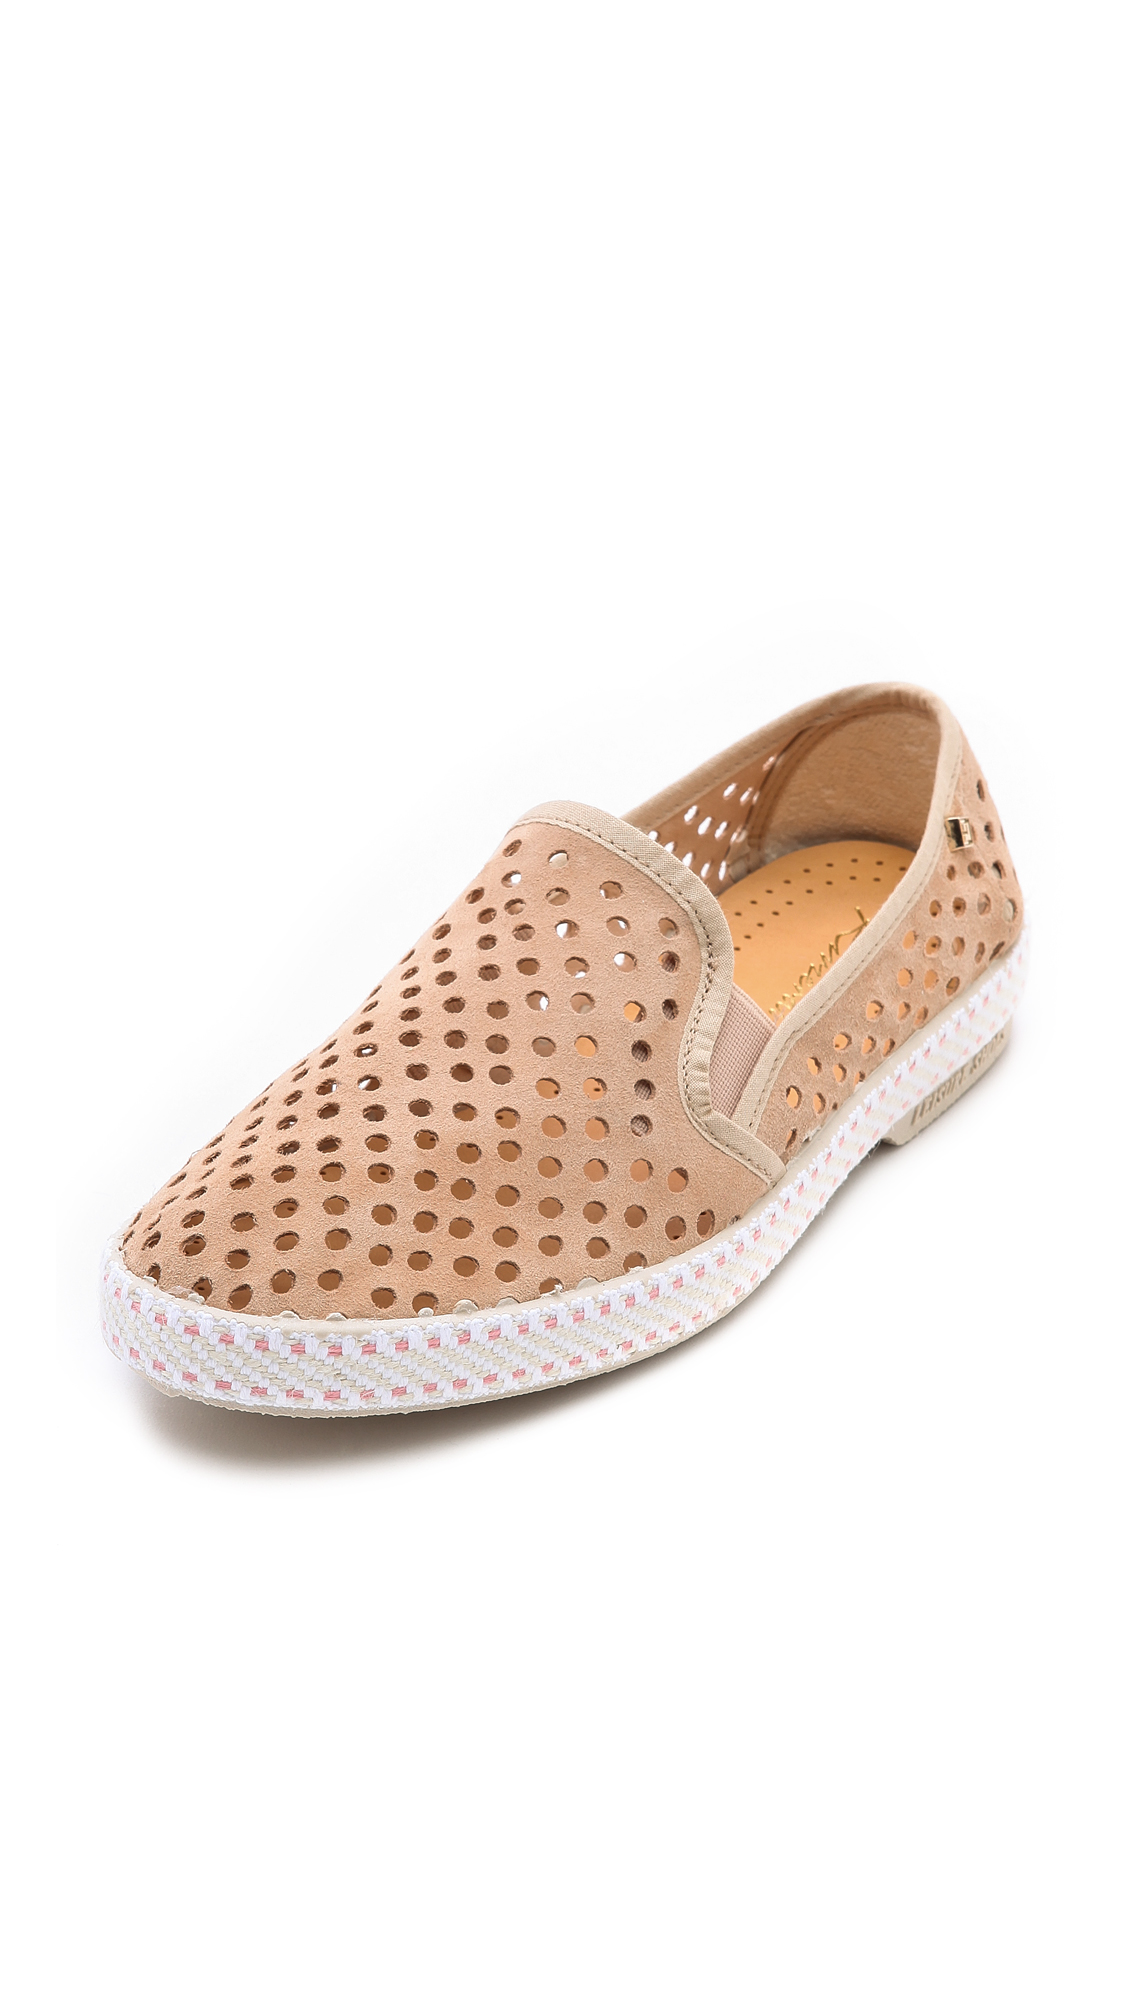 Rivieras Sultan Slip On Perforated Sneakers In Natural Lyst